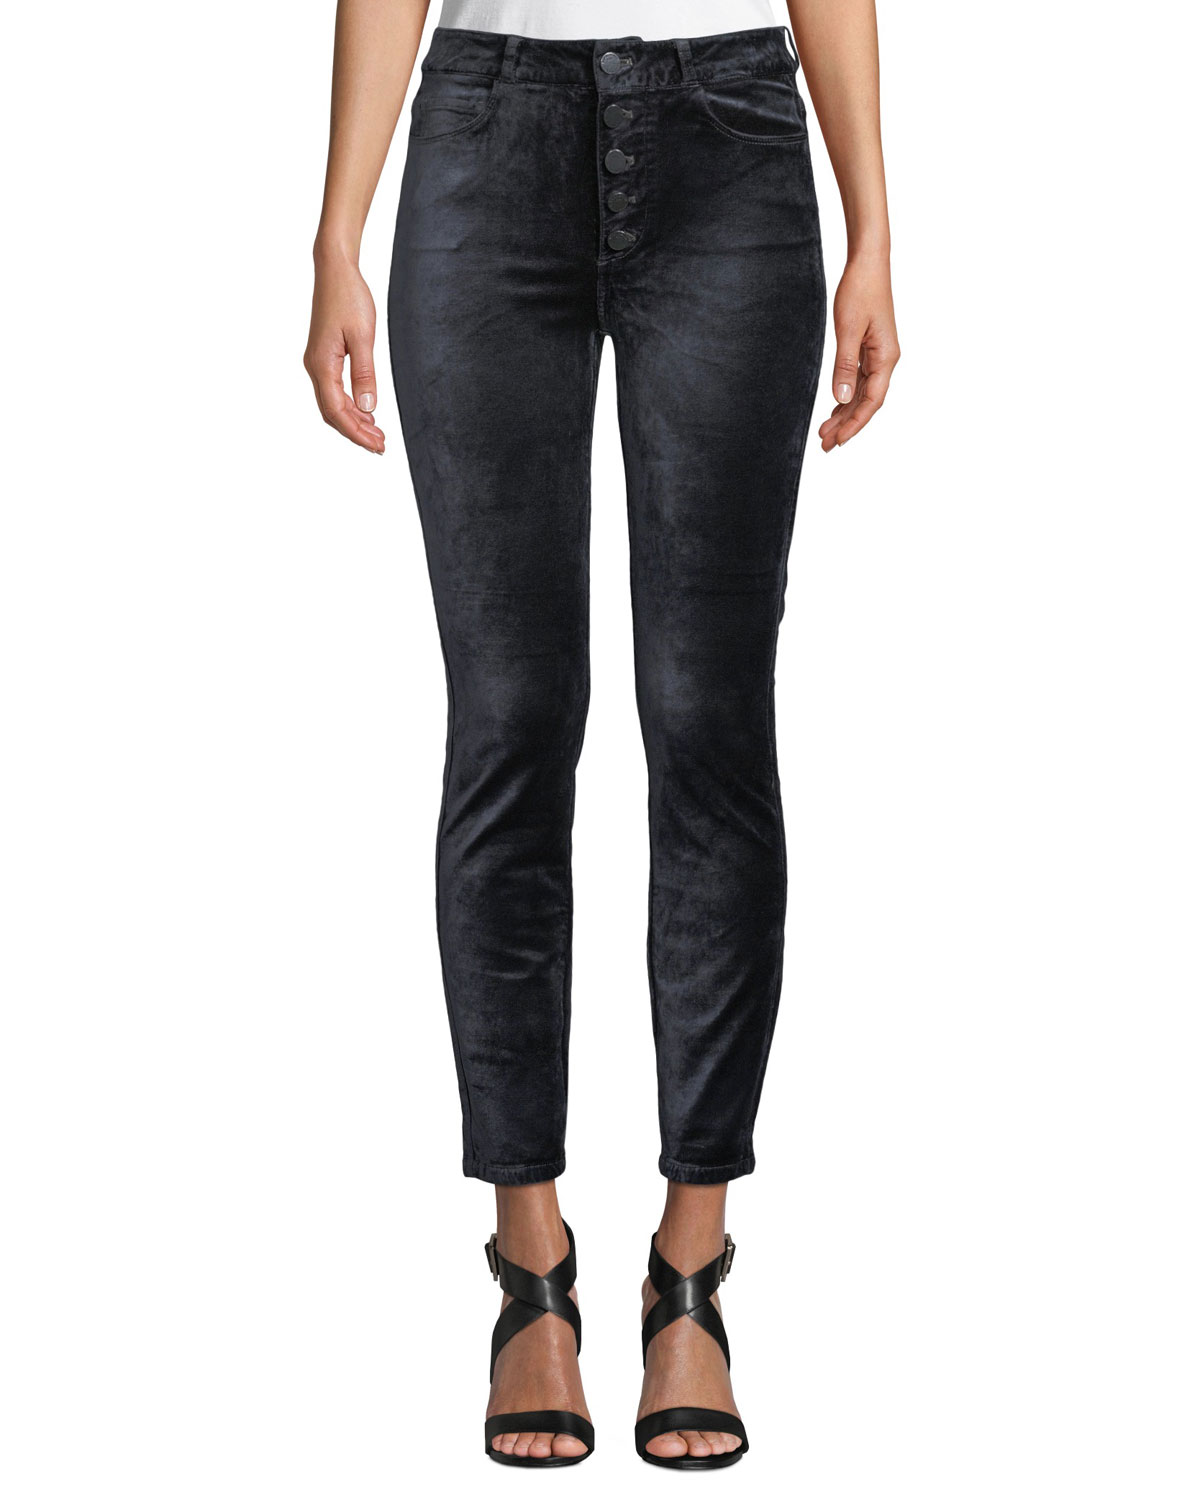 PAIGE HOXTON VELVET ANKLE SKINNY JEANS WITH BUTTON FLY